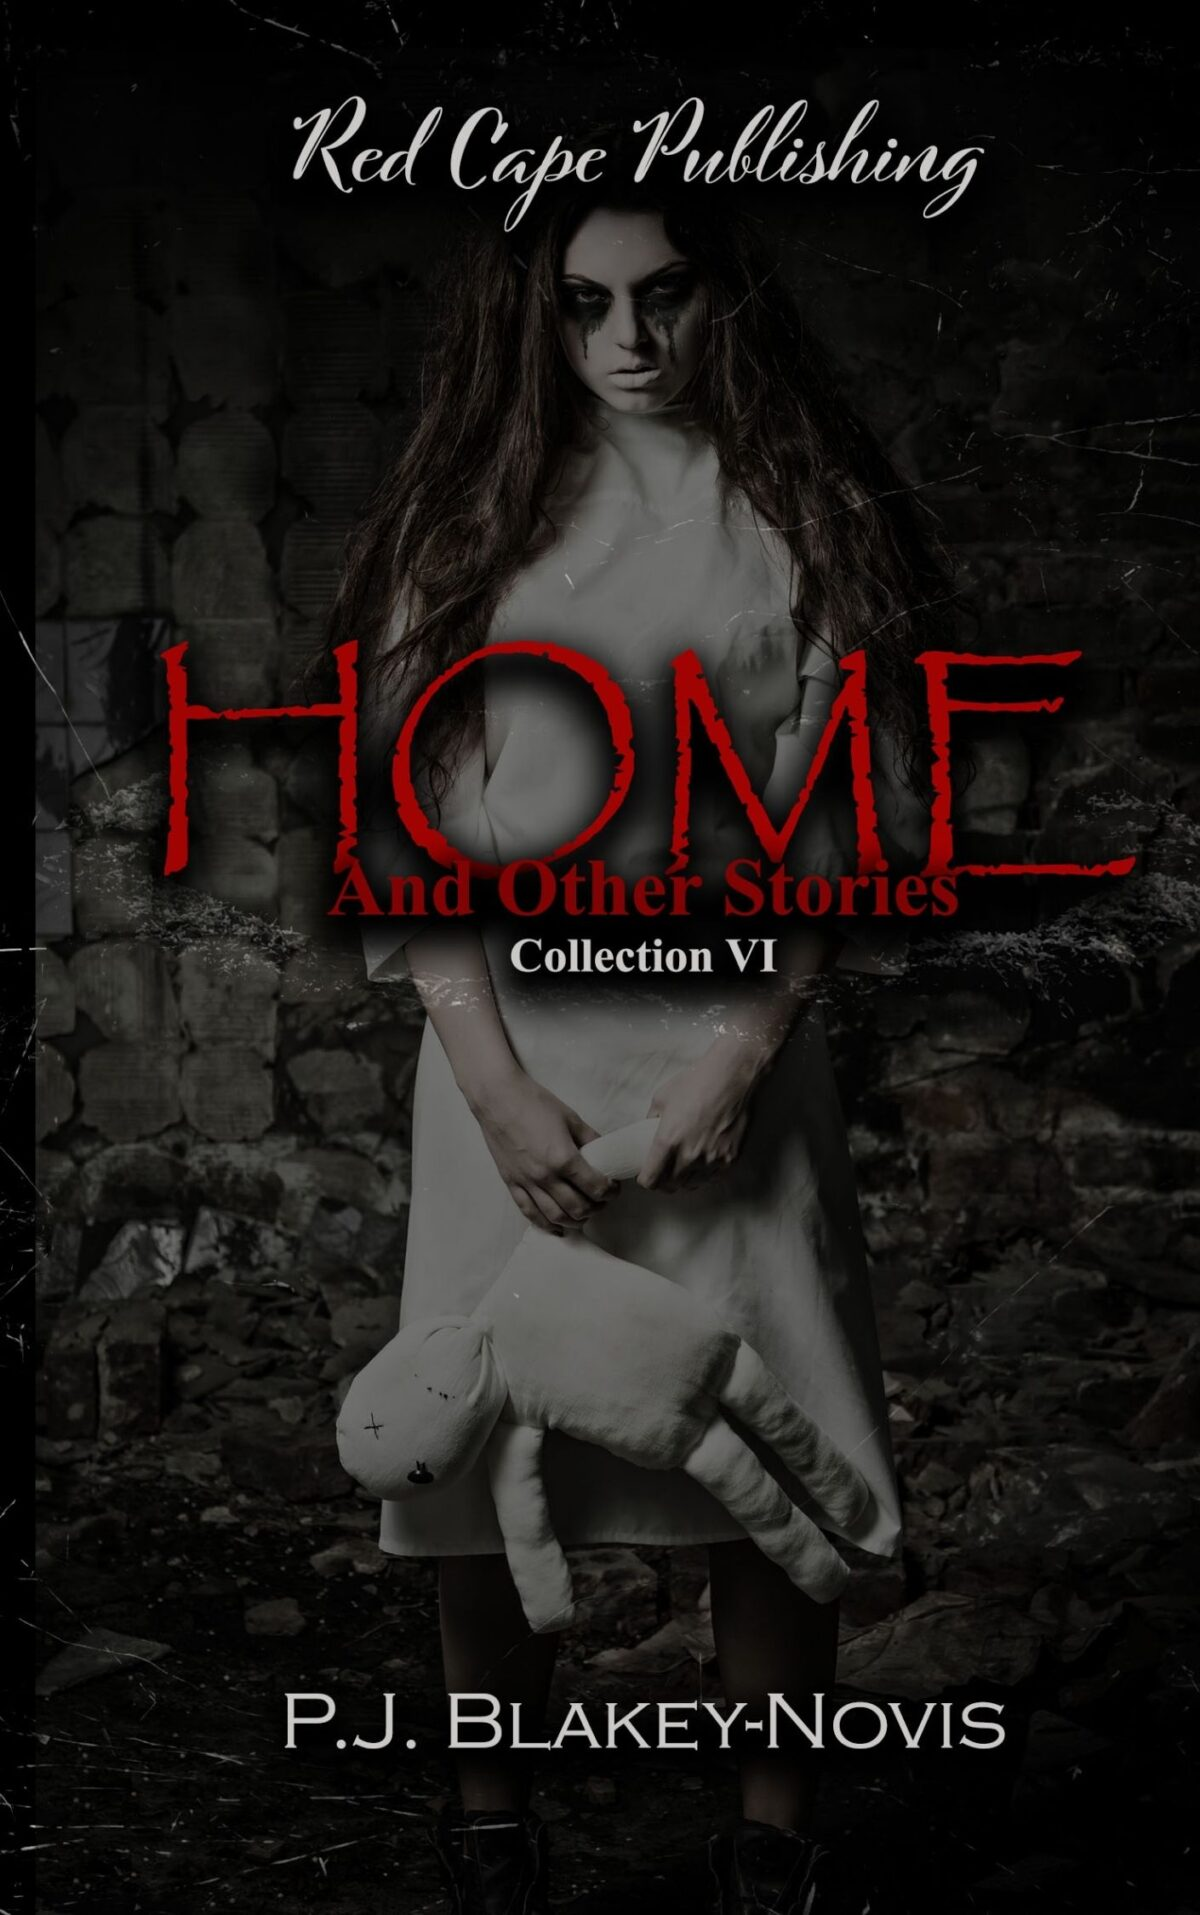 Red Cape Publishing to Release Home & Other Stories by P.J. Blakey-Novis on March 10th